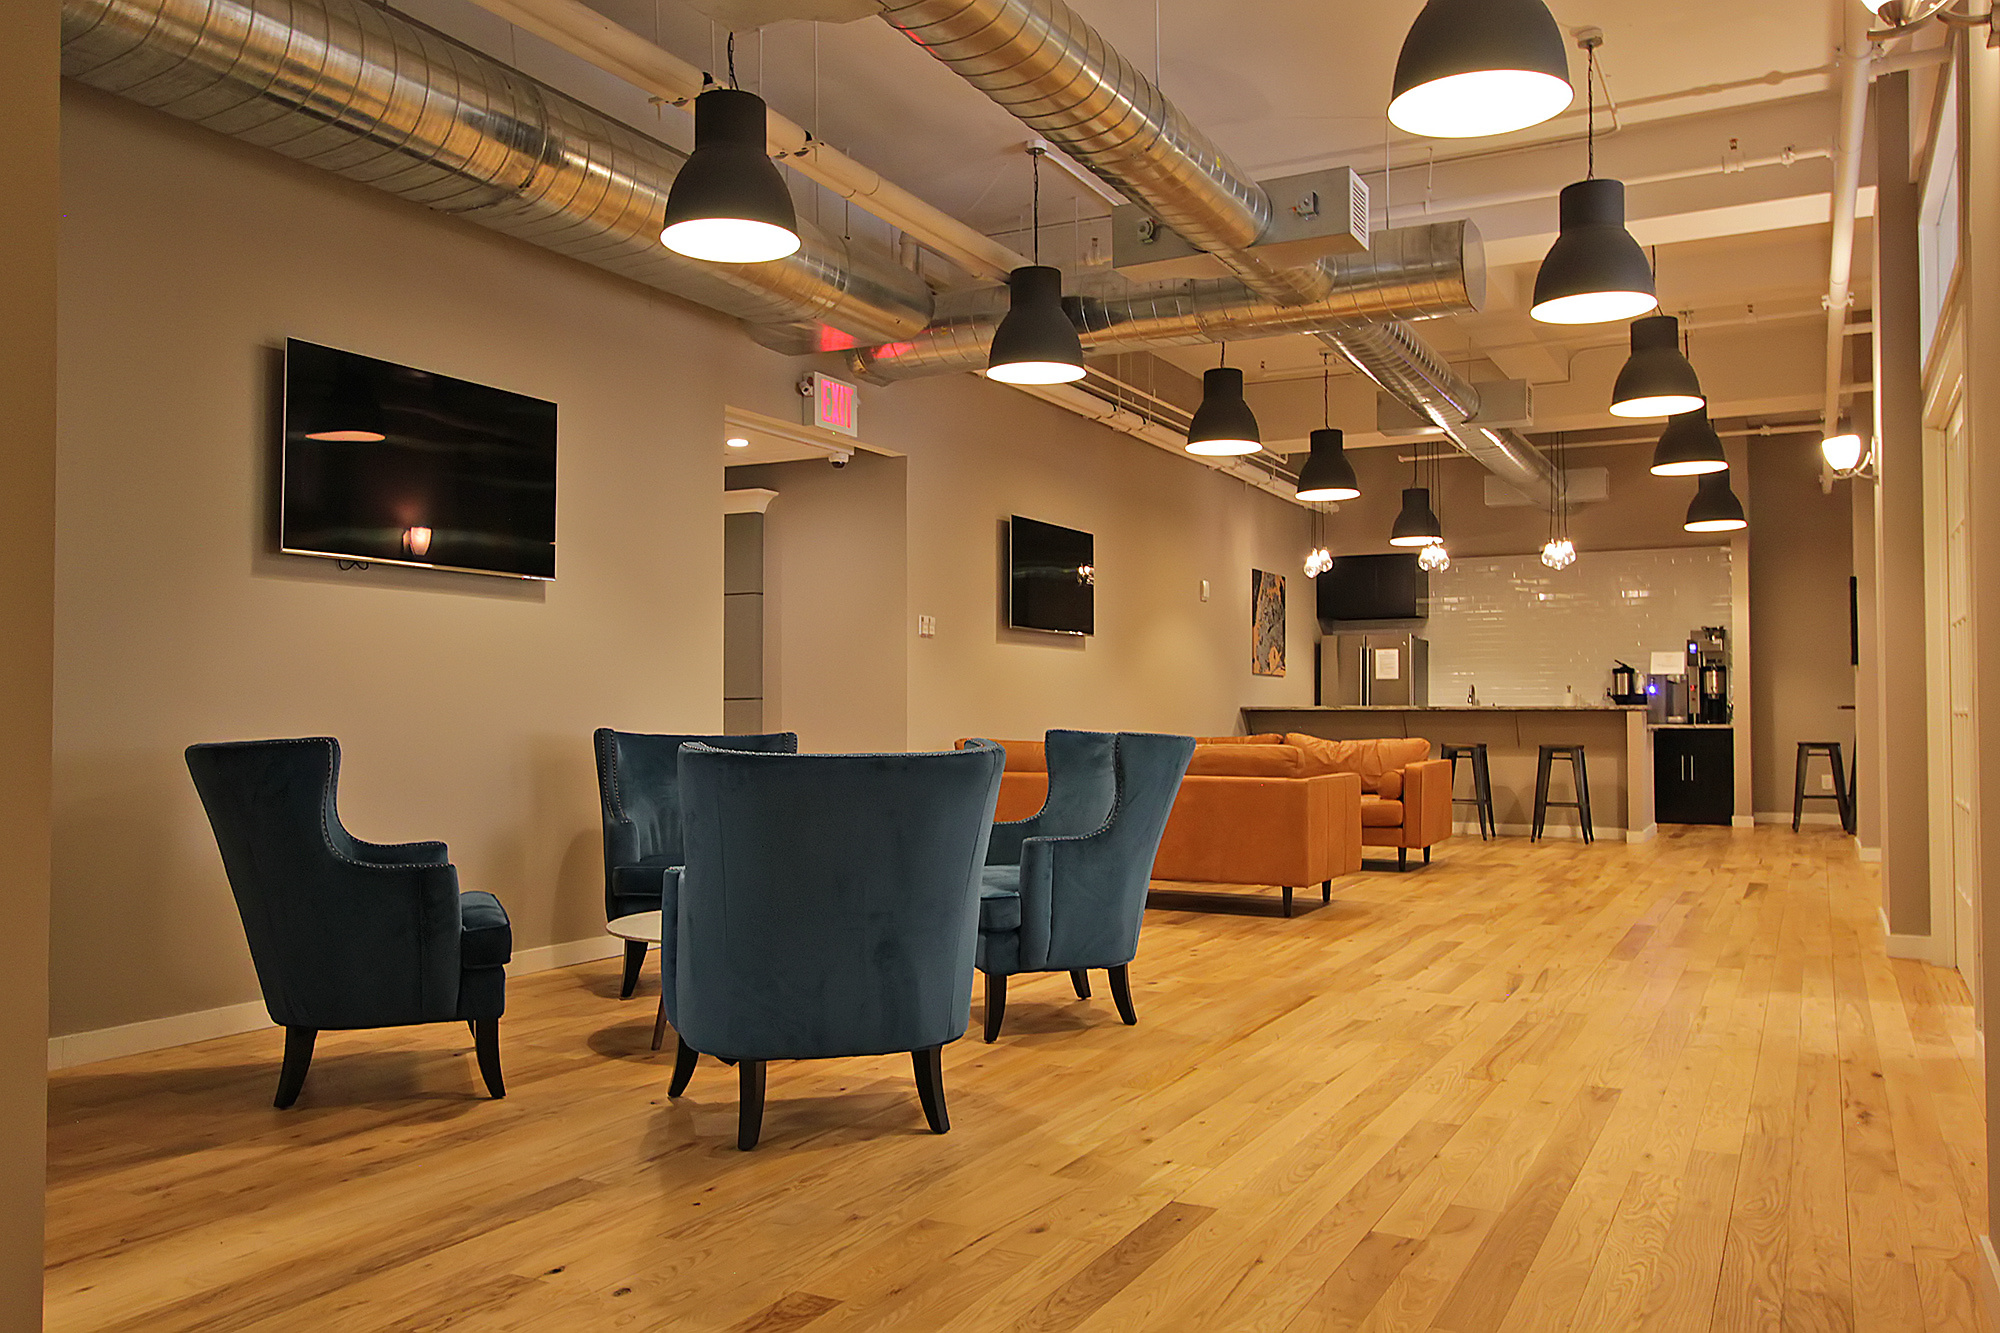 Select Office Suites - 90 Broad St. - Financial District, NY